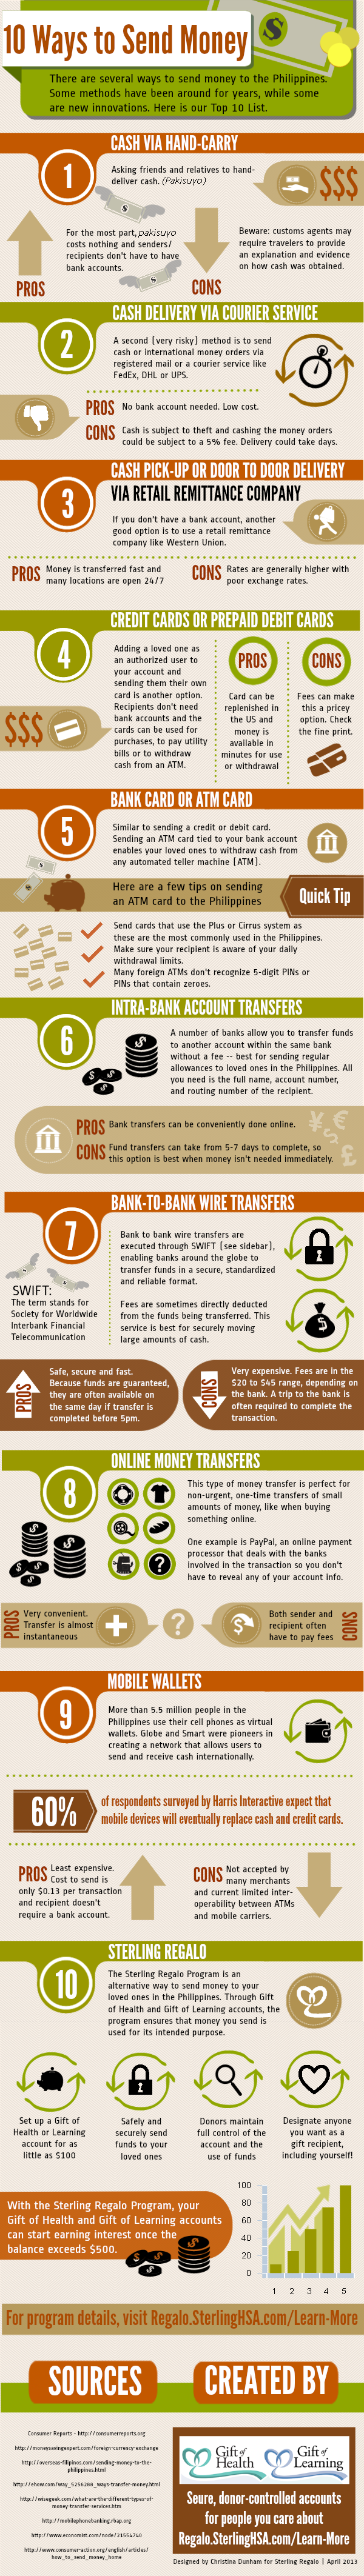 10 Ways to Send Money to the Philippines – An infographic by  Sterling Regalo